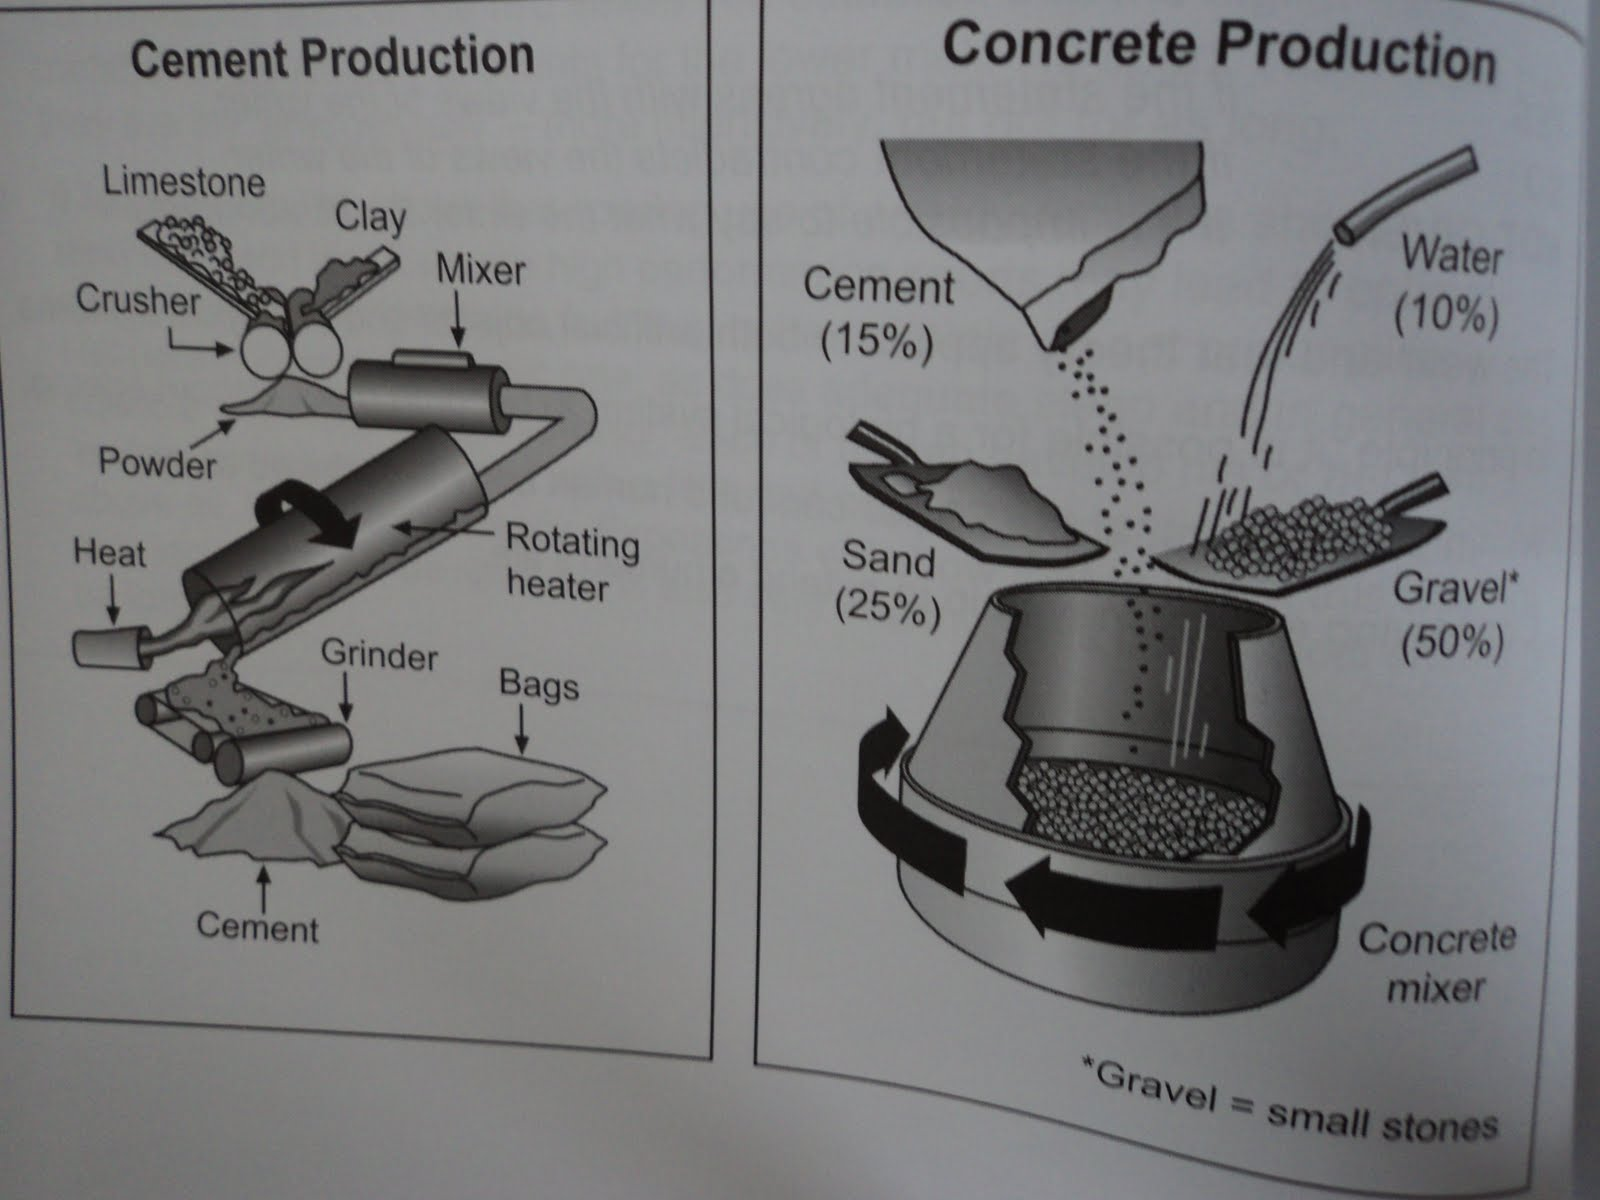 ielts task 1 process of making cement to produce a running water diagram frozen water diagram #12